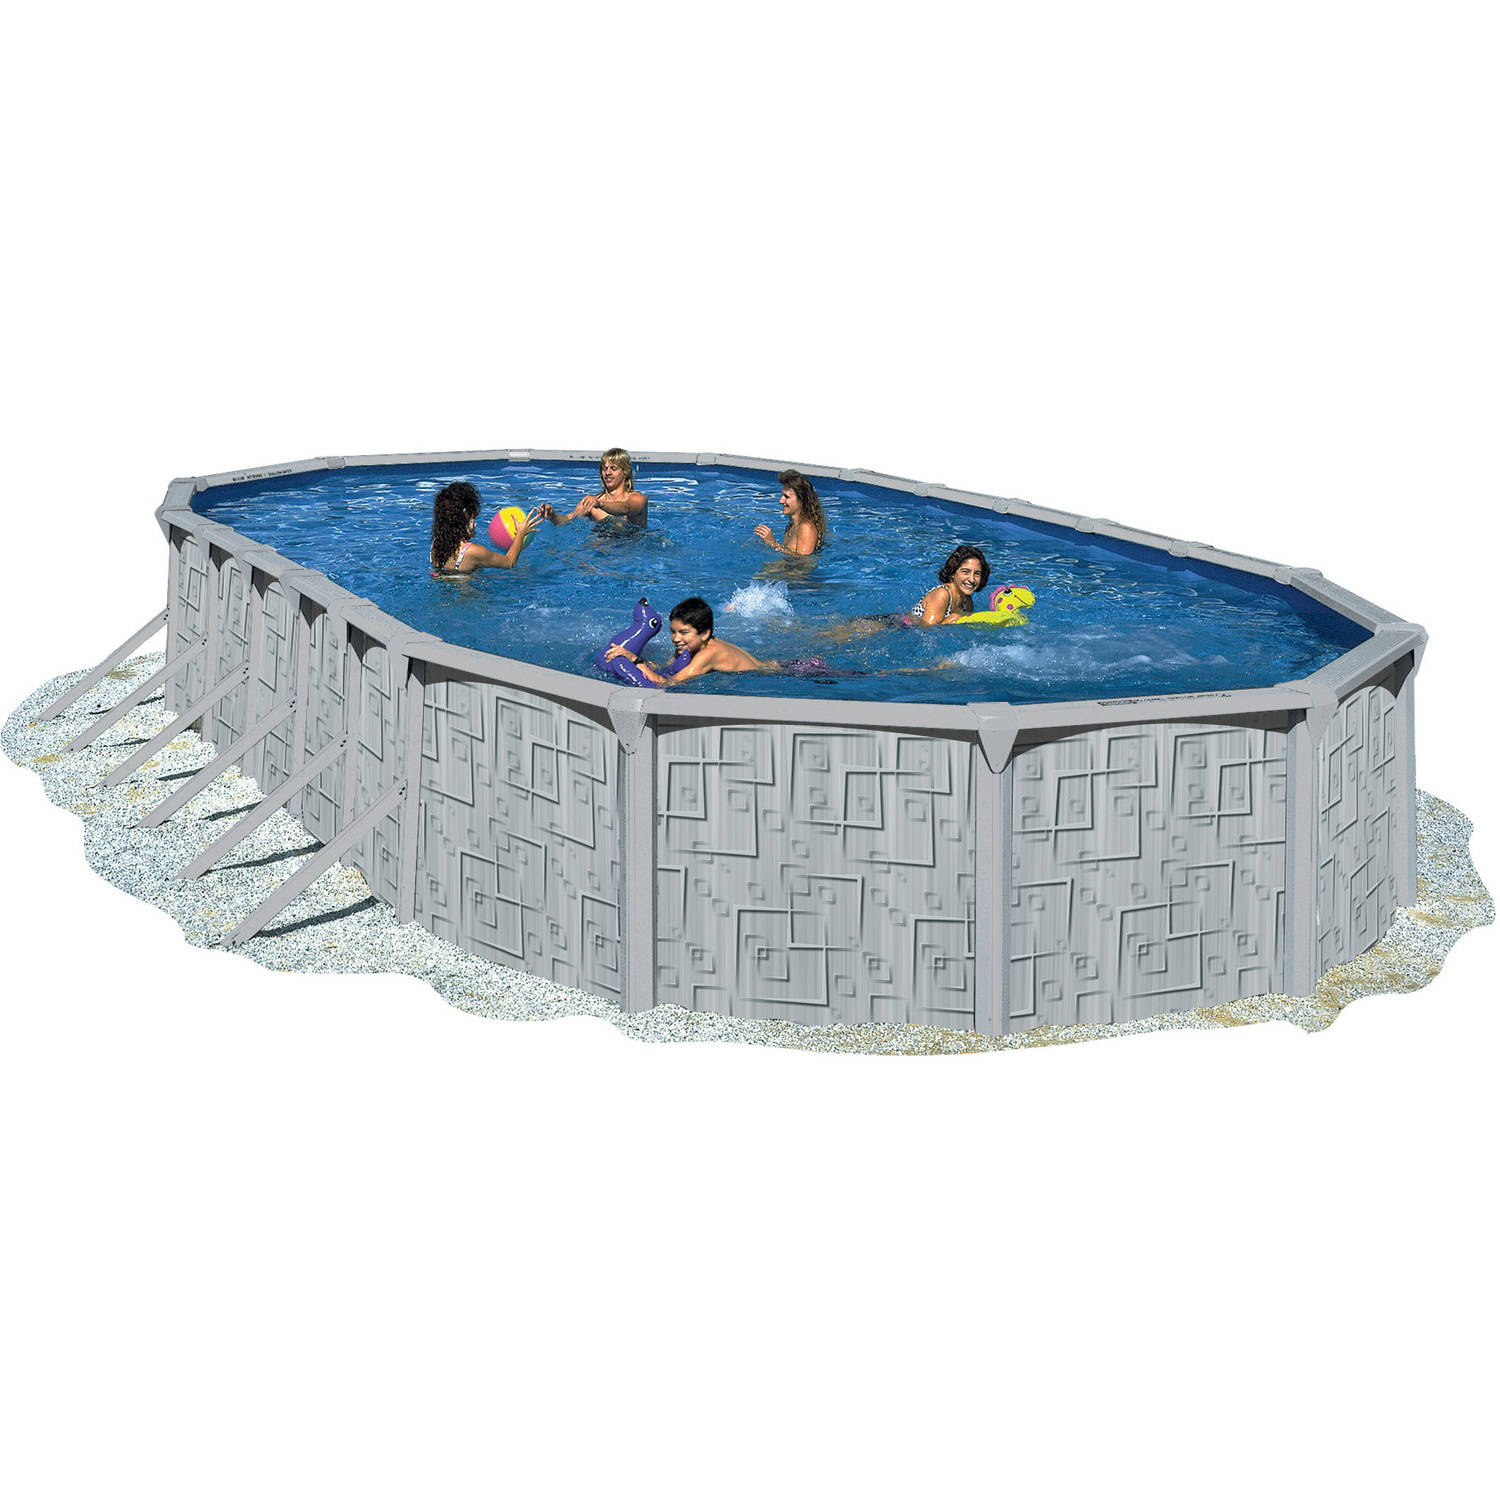 "Click here to buy Heritage 30' x 15' x 52"" Illusion Steel Wall Above Ground Swimming Pool by Heritage."